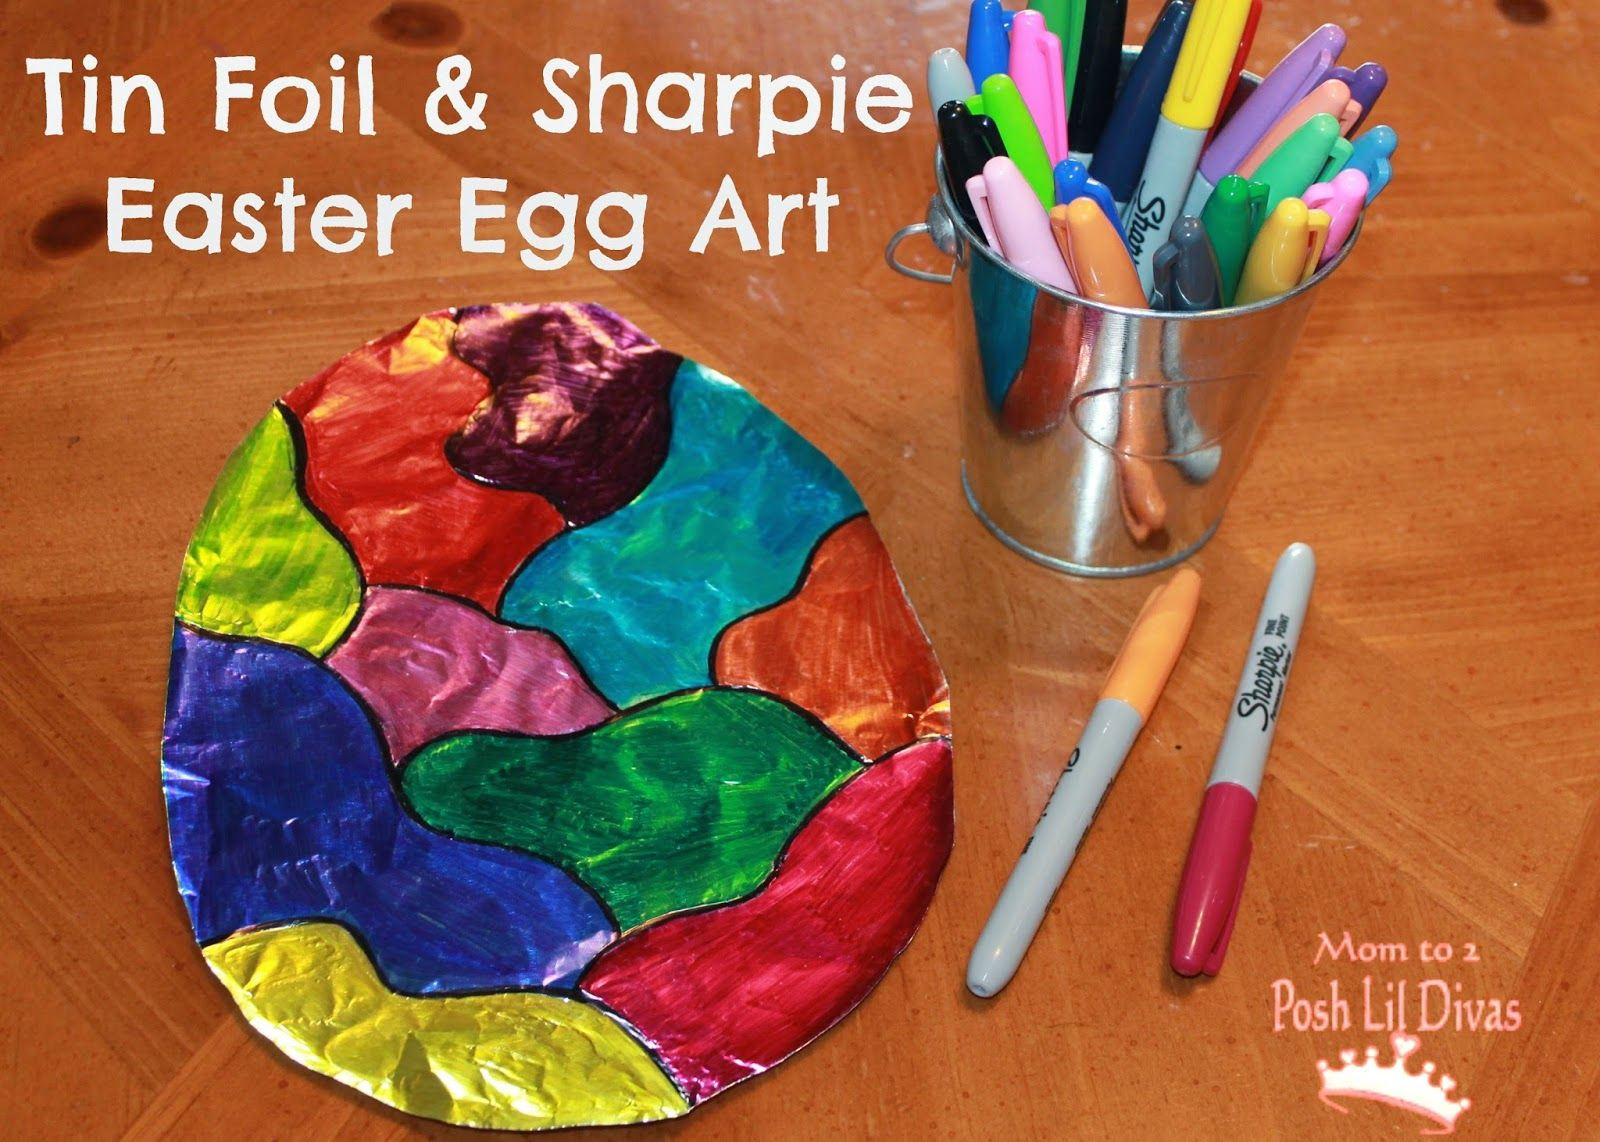 Easter arts and crafts ideas for children - Tin Foil Sharpie Easter Egg Art So Easy Fun For Kids Of All